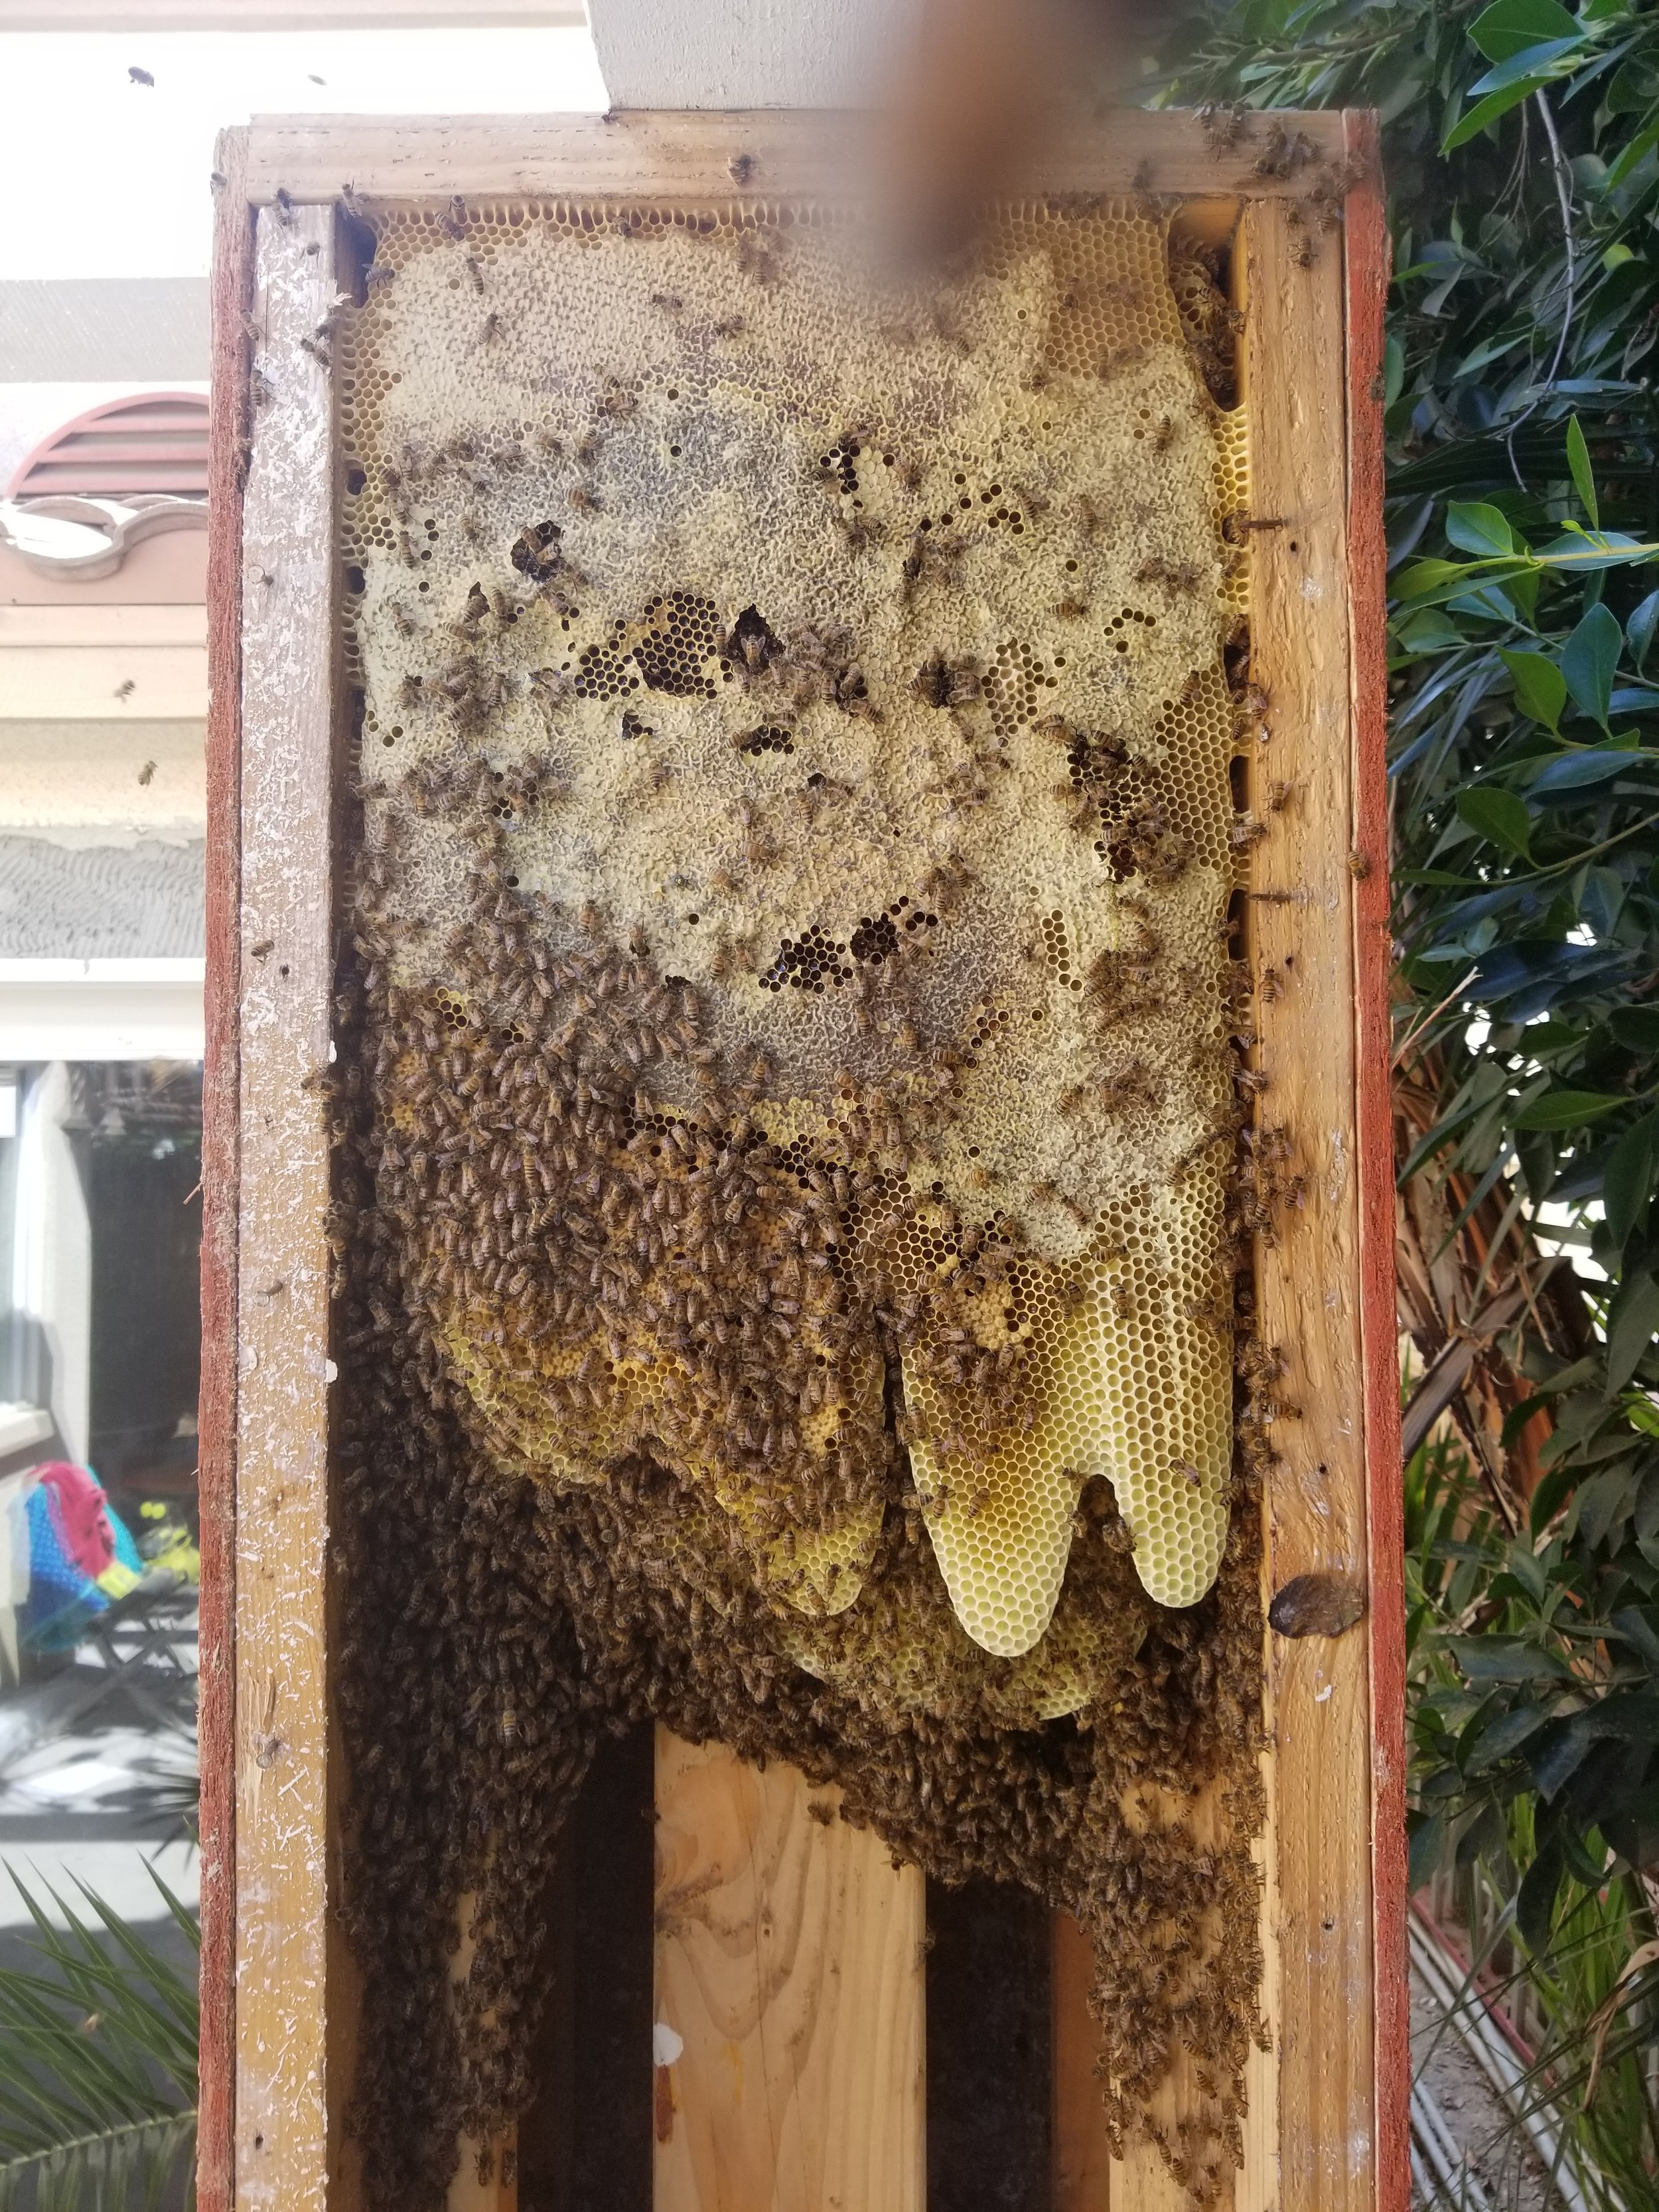 BEE REMOVAL — Sunshine Honey and Bee Removal